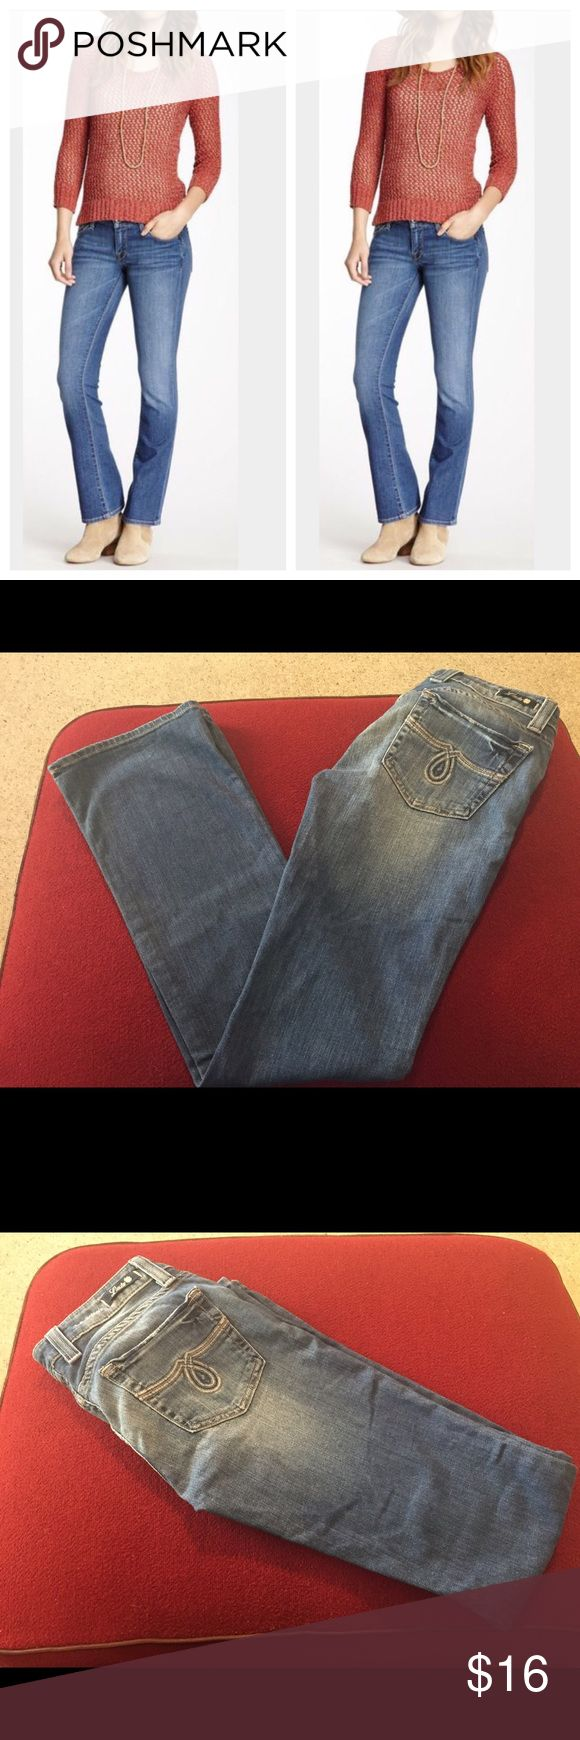 """🎉FLASH SALE🎉Lucky brand Lola bootcut Sz 2/26 🎉FLASH SALE  final price today only!🎉Lucky Brand Lola low rise bootcut jeans sz 2/26. Lightly distressed for that comfortably lived in look (made this way!) Zipper & button fly. 5 pockets. Medium wash. Can be dressed up or down for work or play. Regular inseam. Cotton/poly/spandex blend for comfort & stretch. Waist is 26"""", rise is 7"""" ankle opening is 8"""", inseam is 31"""". Excellent gently used condition. No signs of wear at cuff. 1st pic for…"""